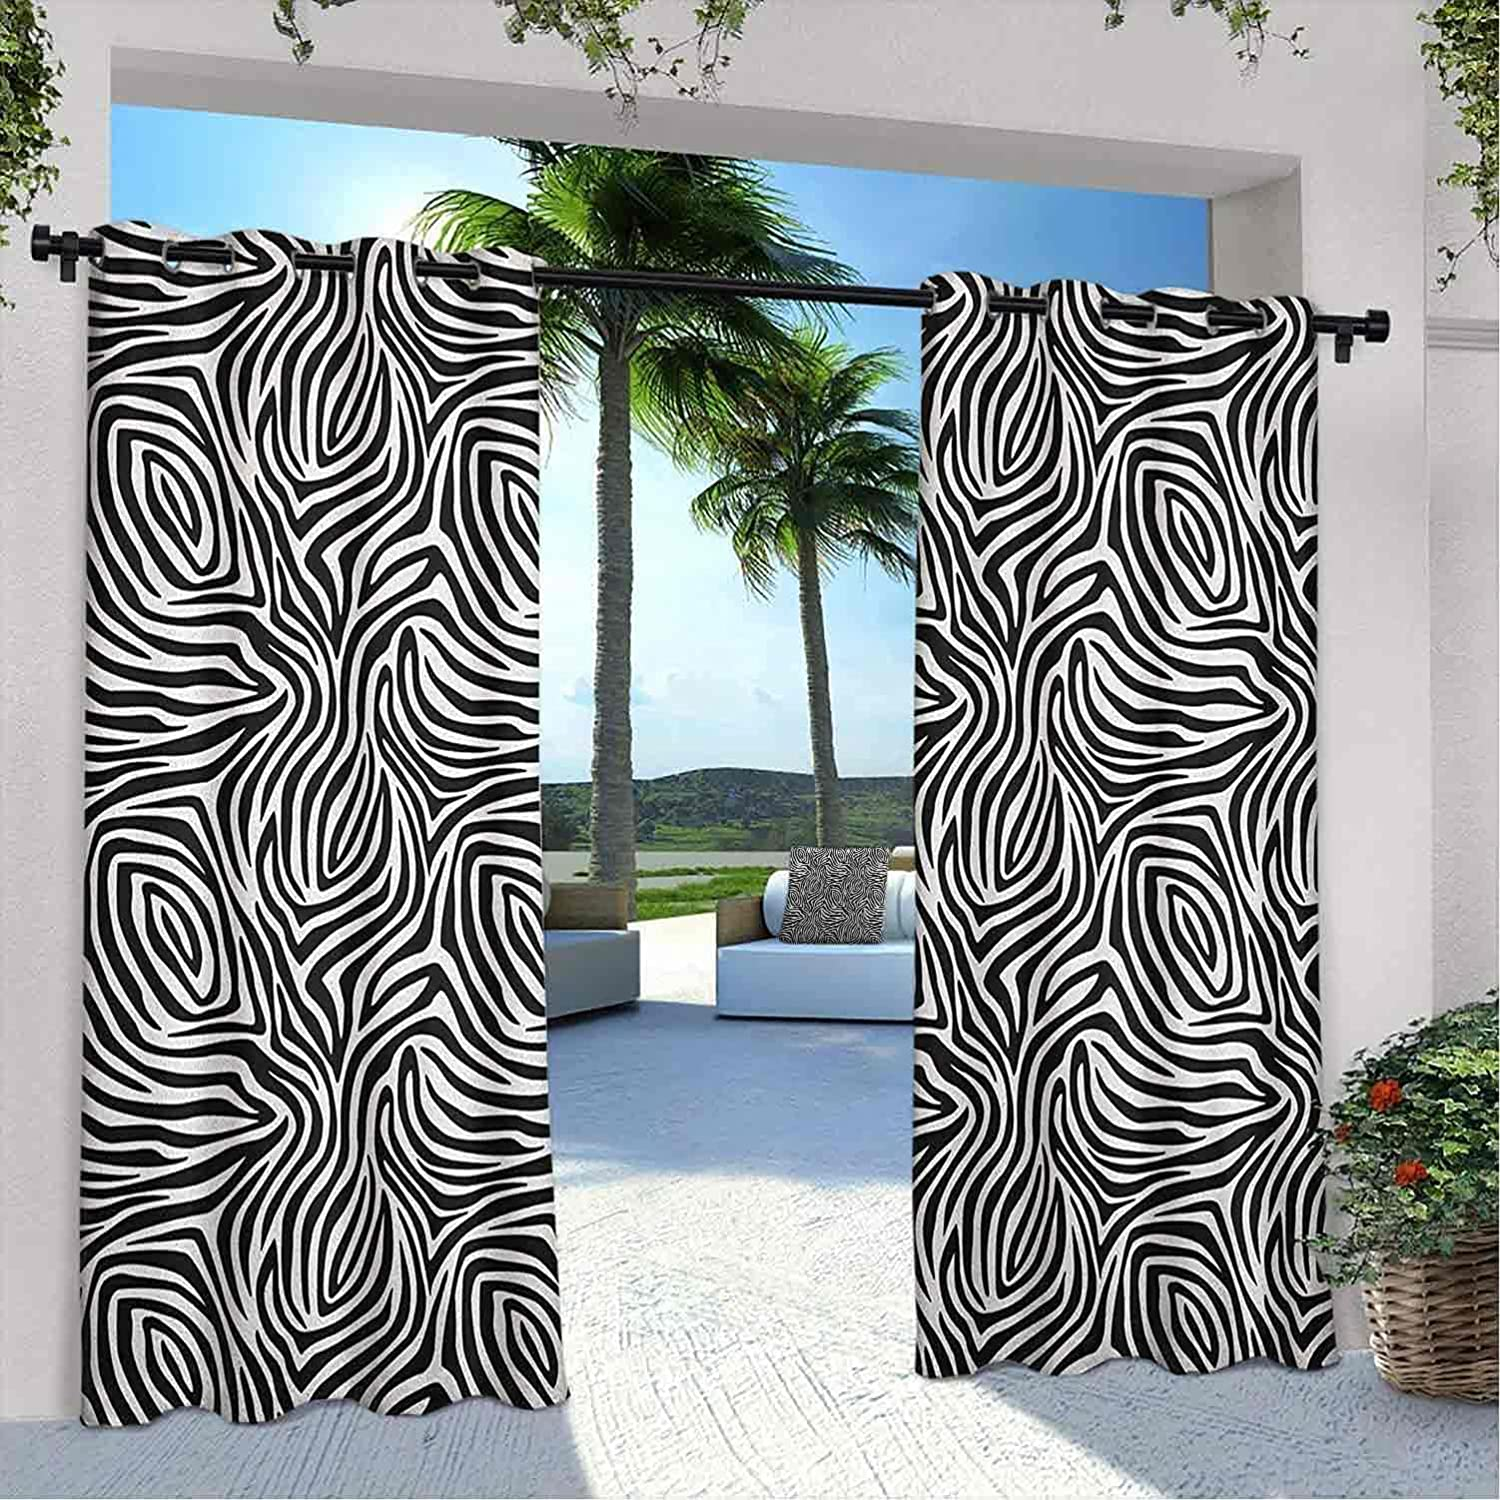 25% OFF Outdoor Privacy Stripes Curtain Zebra with Pattern Abstrac Skin Sales of SALE items from new works